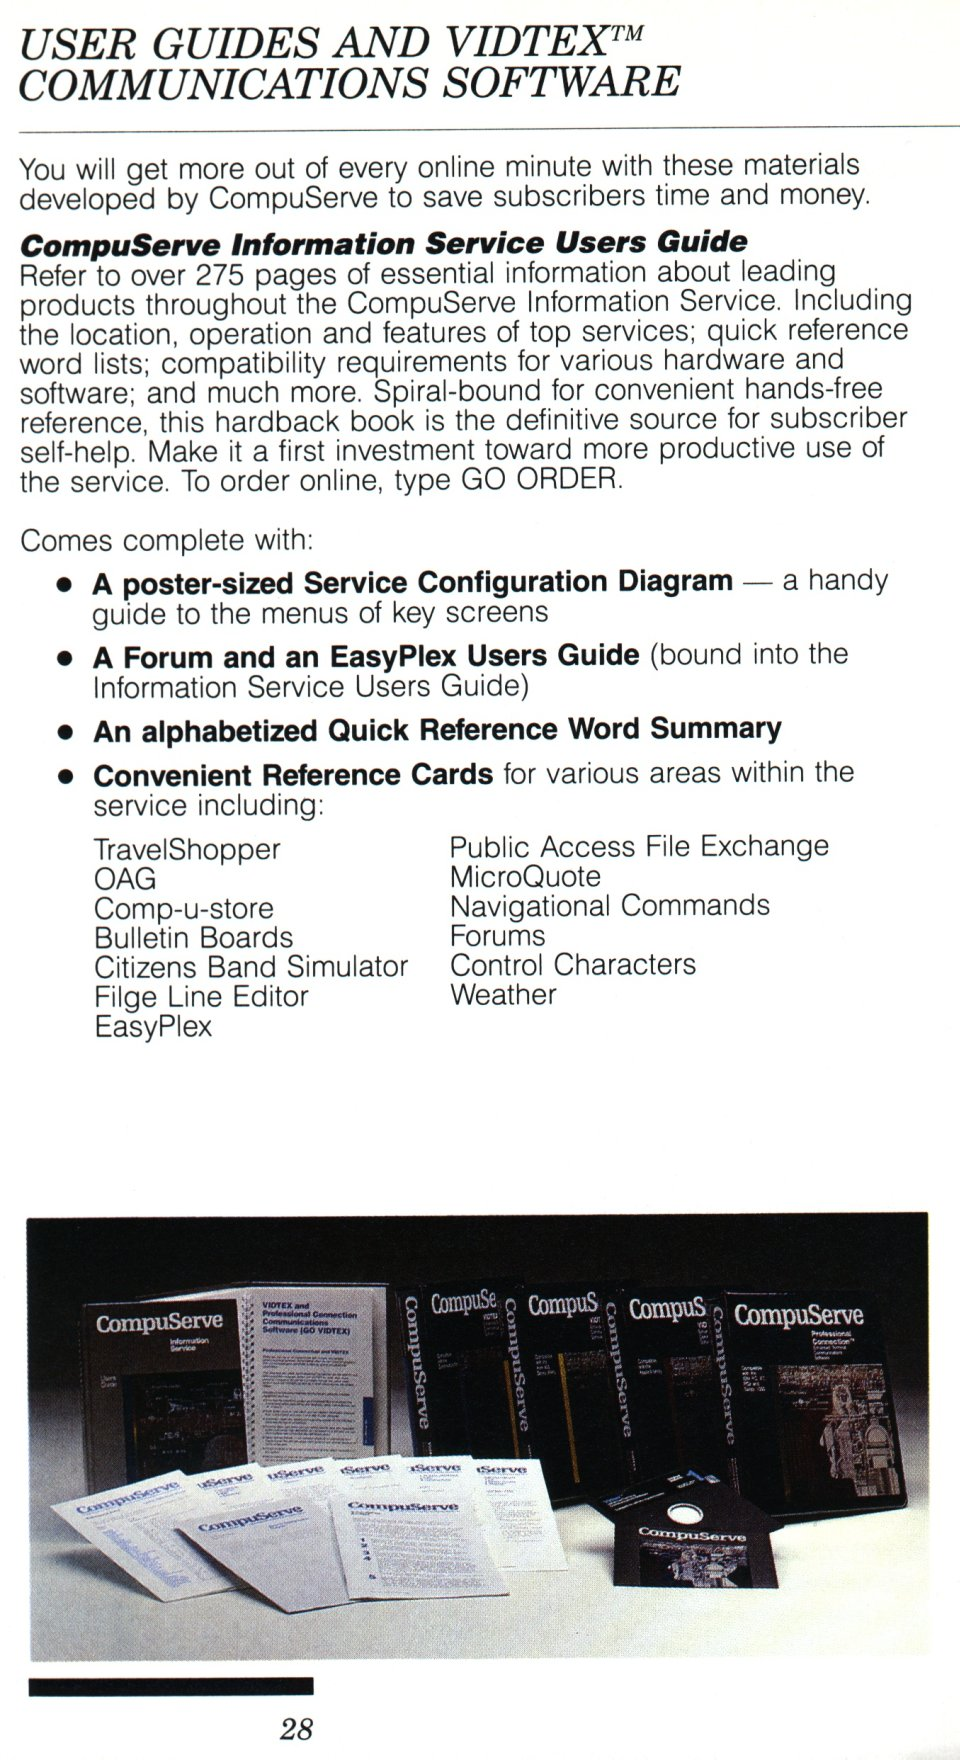 [CompuServe IntroPak page 28/44  User Guides and VIDTEX Communications Software (1/2)]